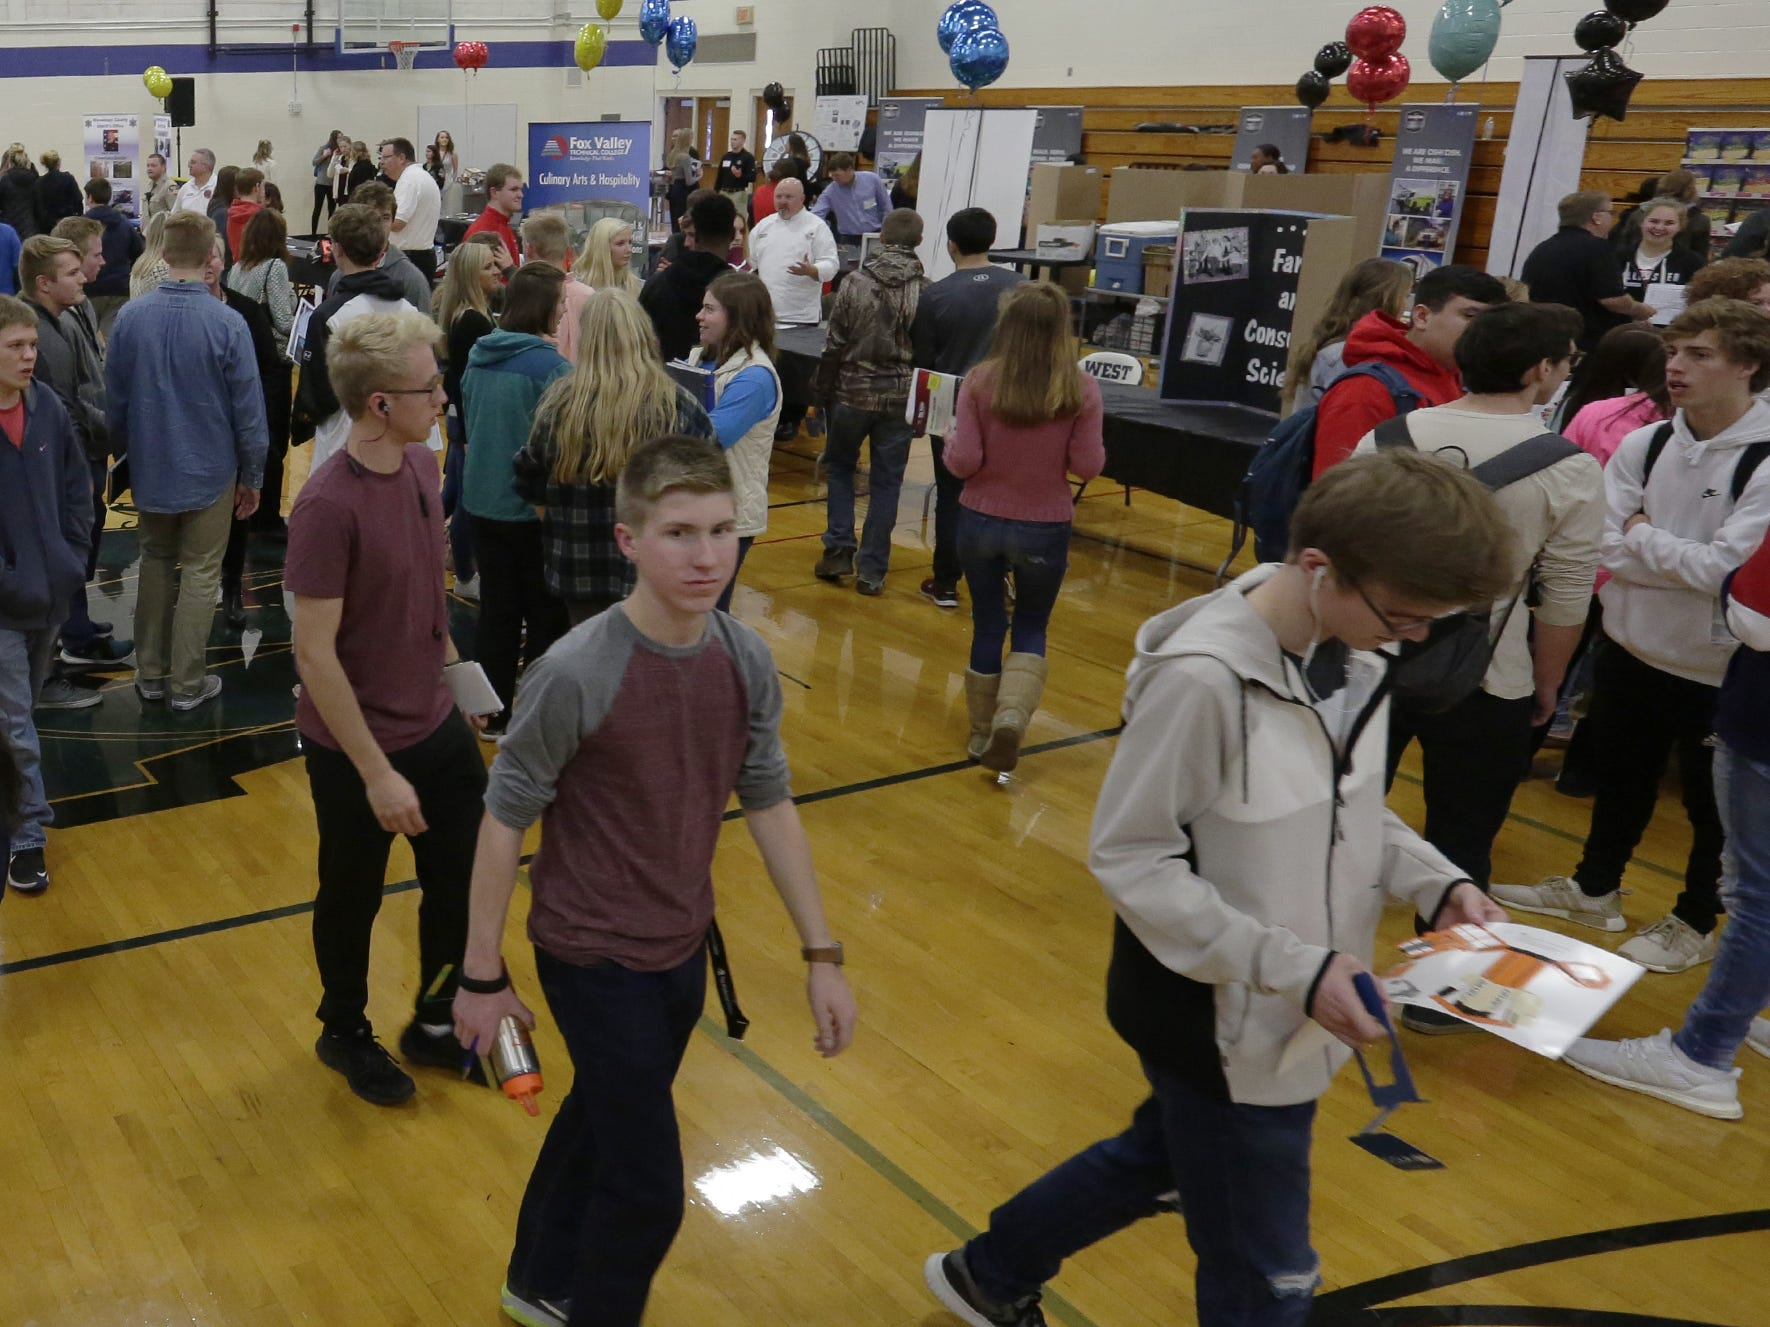 About 1,000 students from Oshkosh and Omro middle and high schools participate Tuesday, Oct. 23, 2018, in the Oshkosh Chamber of Commerce's Career Exploration Fair at Oshkosh West High School. This year's fair expanded to high school students, thanks to a $5,000 grant from AT&T.